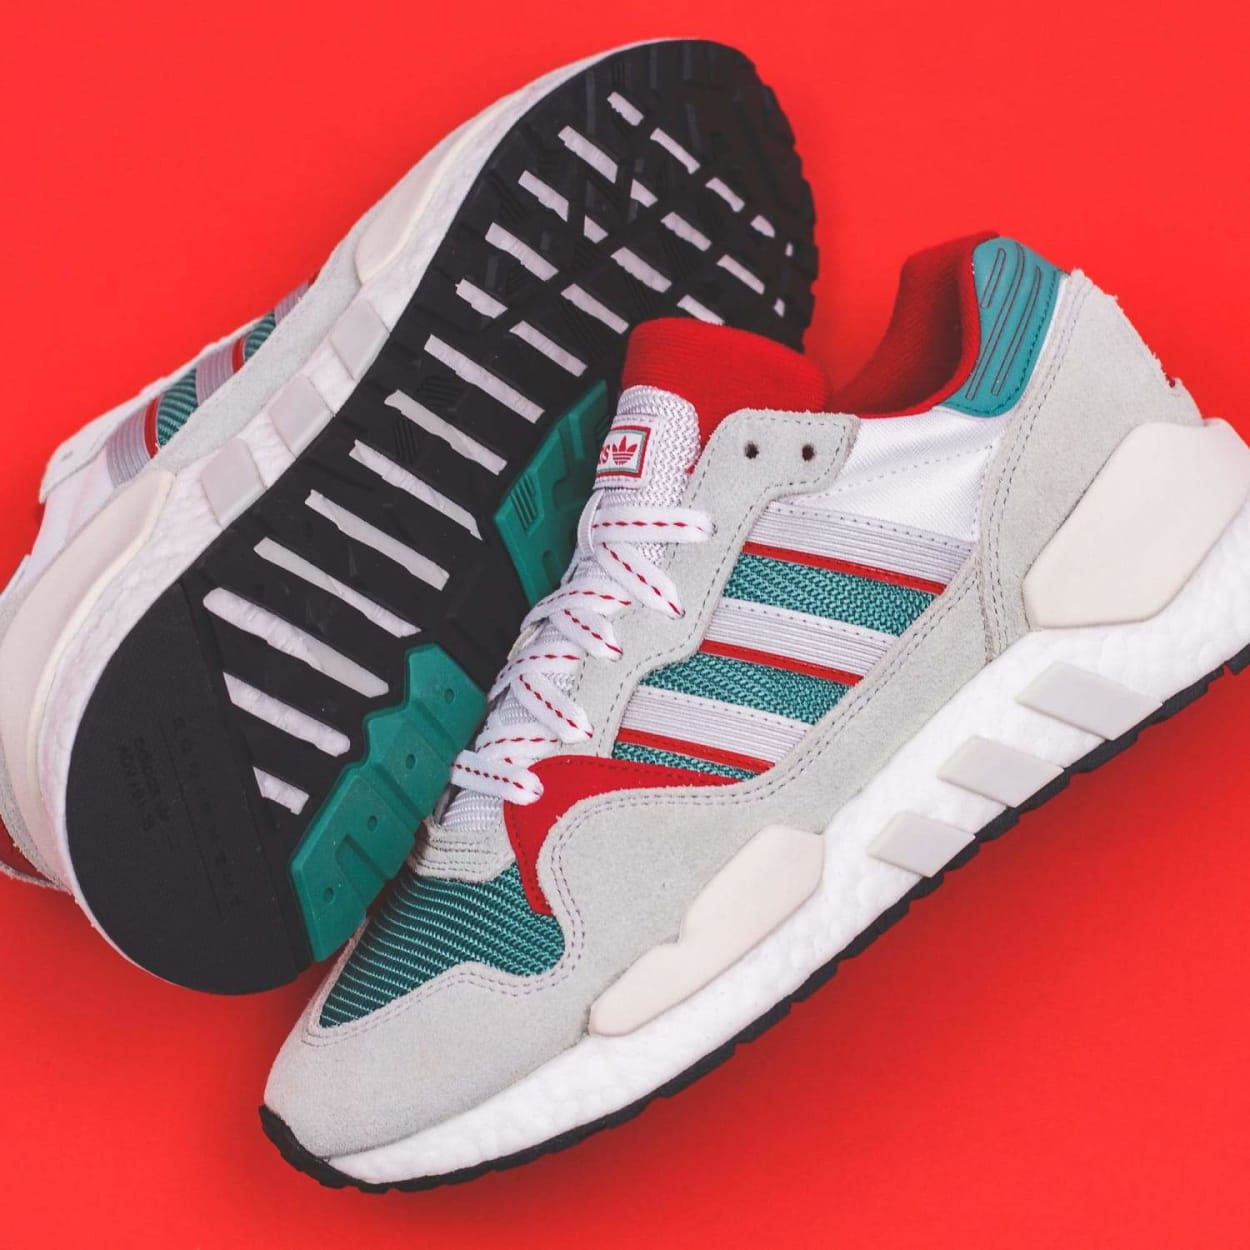 adidas Originals Never Made Pack - Micro Pacer x NMD R1 (G26778) adidas 98 x Boost-You-Wear (G26807) Country x Kamanda (G26797) ZX 930 x EQT